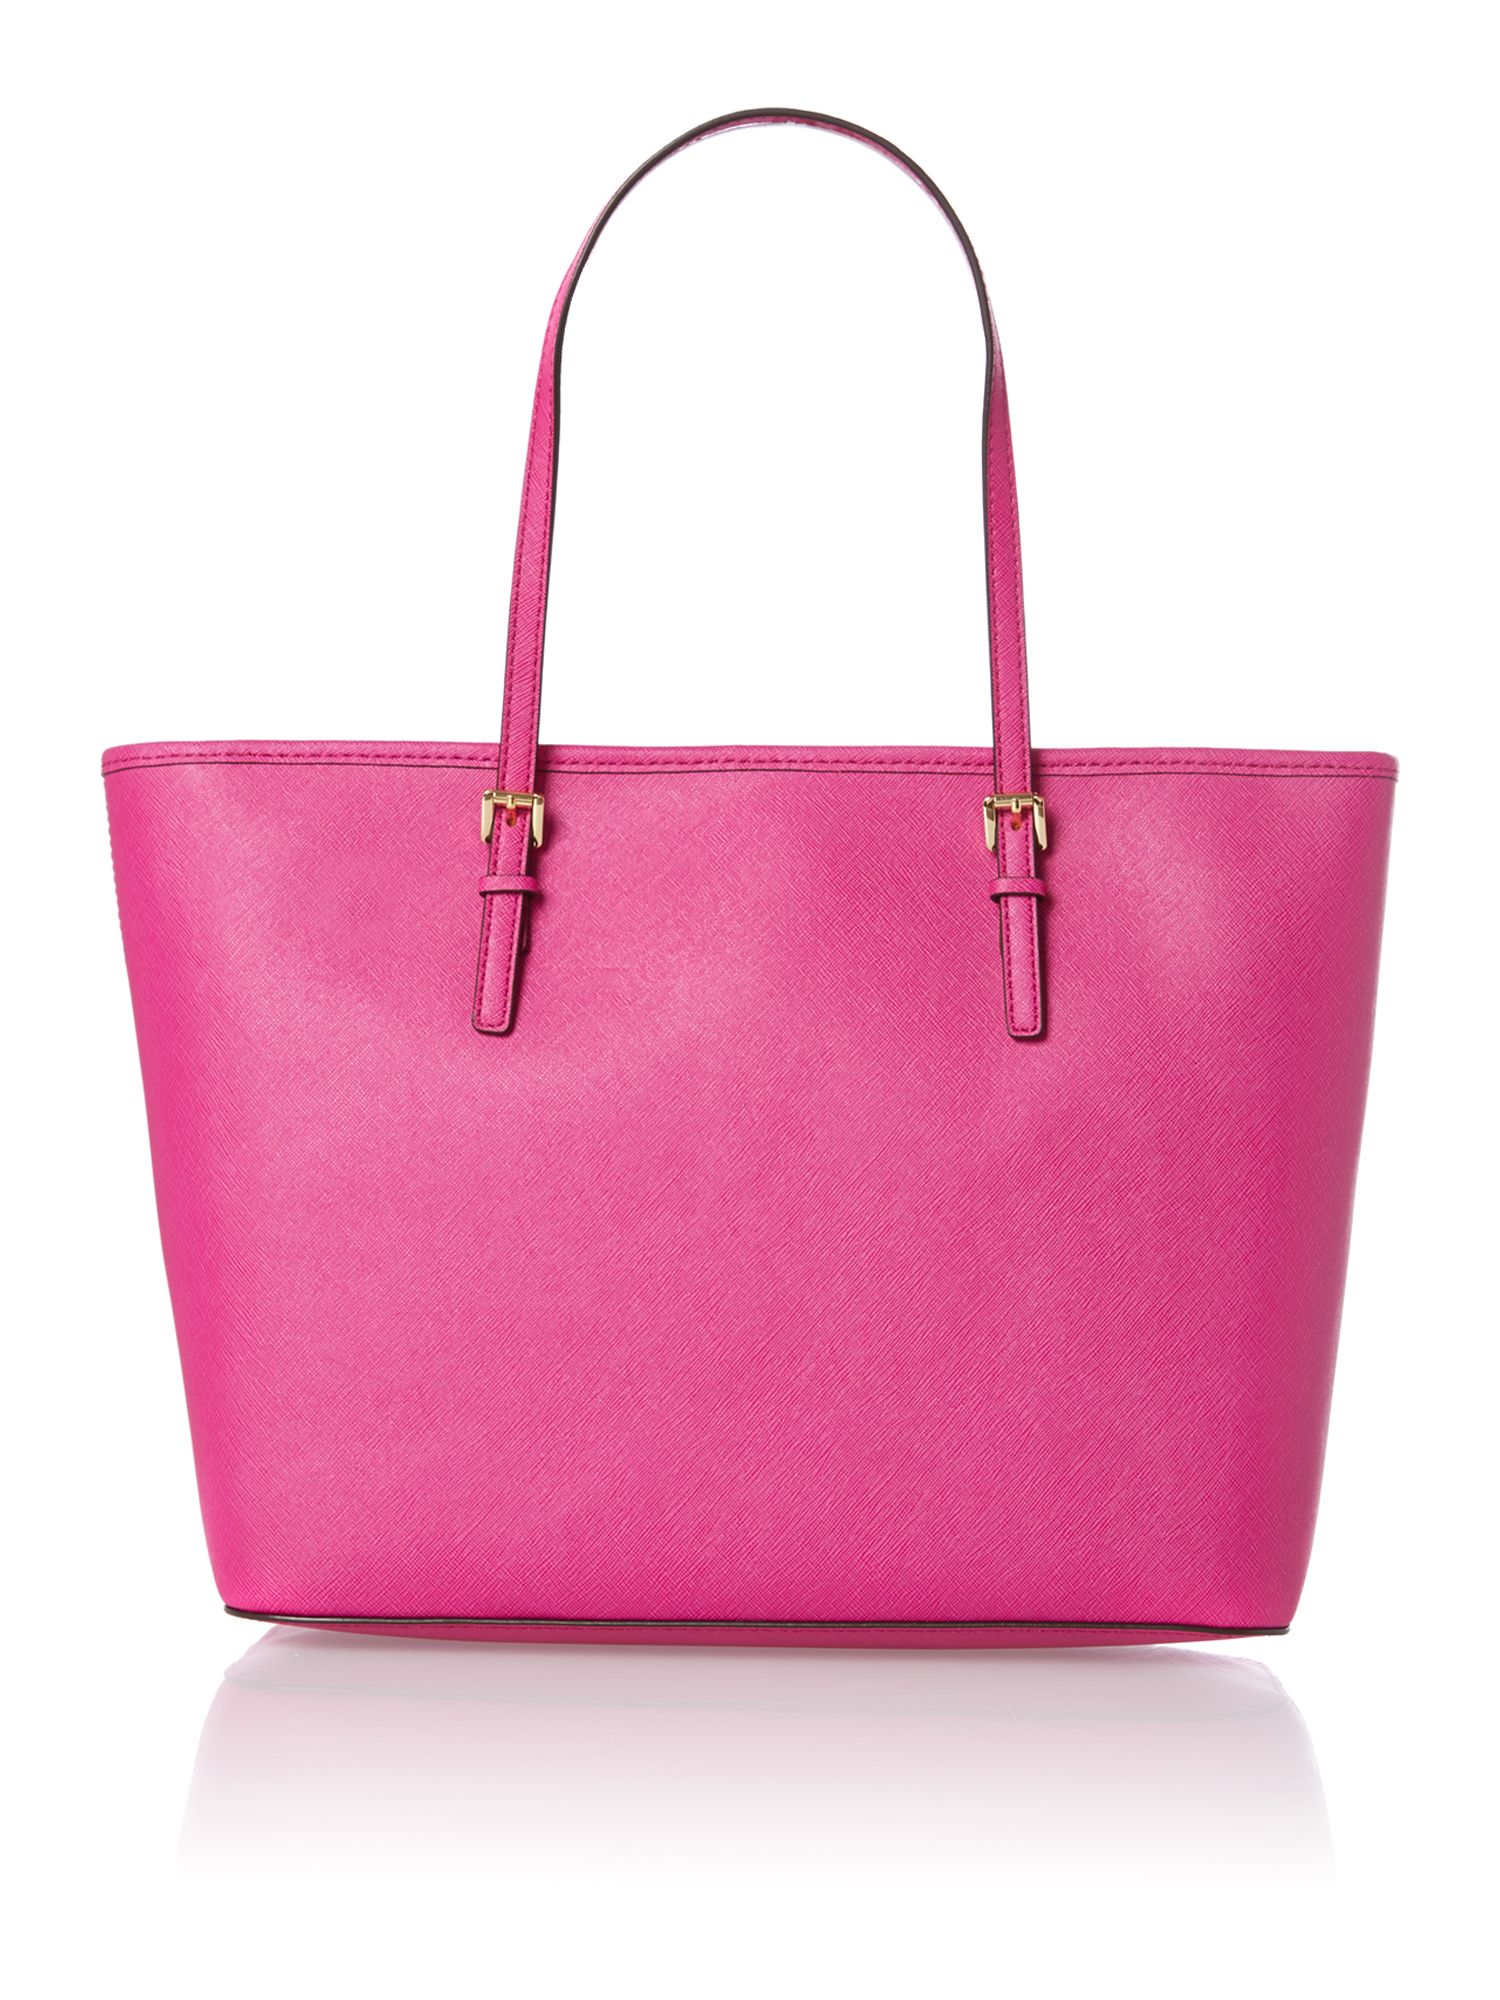 Jet set travel medium pink tote bag